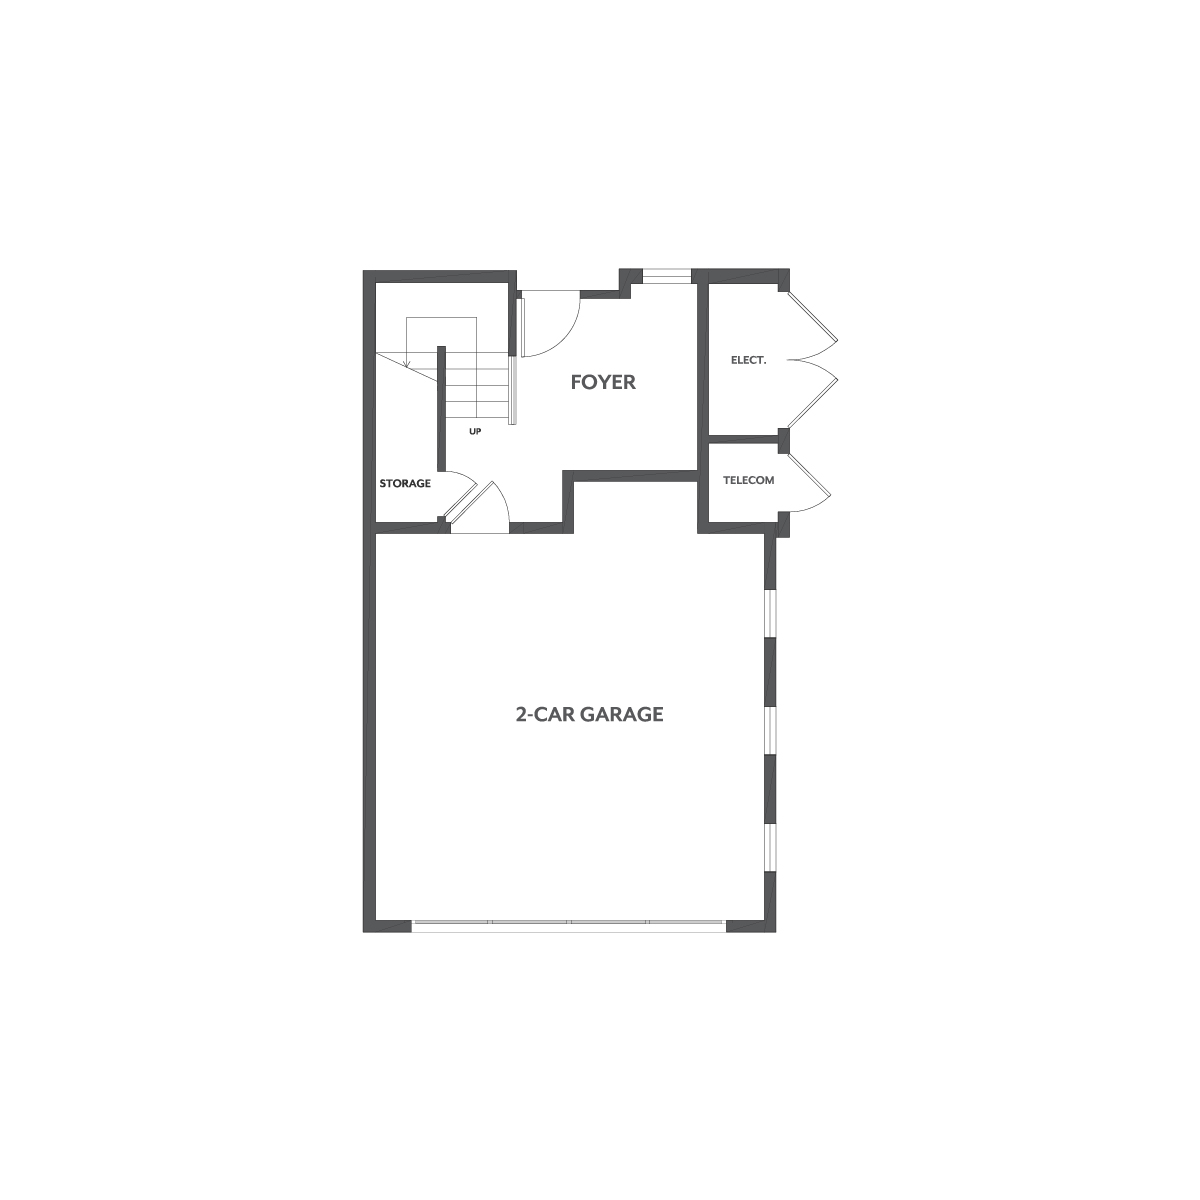 Residence 1 floor 1 plan | Wilshire at Boulevard in Dublin, CA | Brookfield Residential